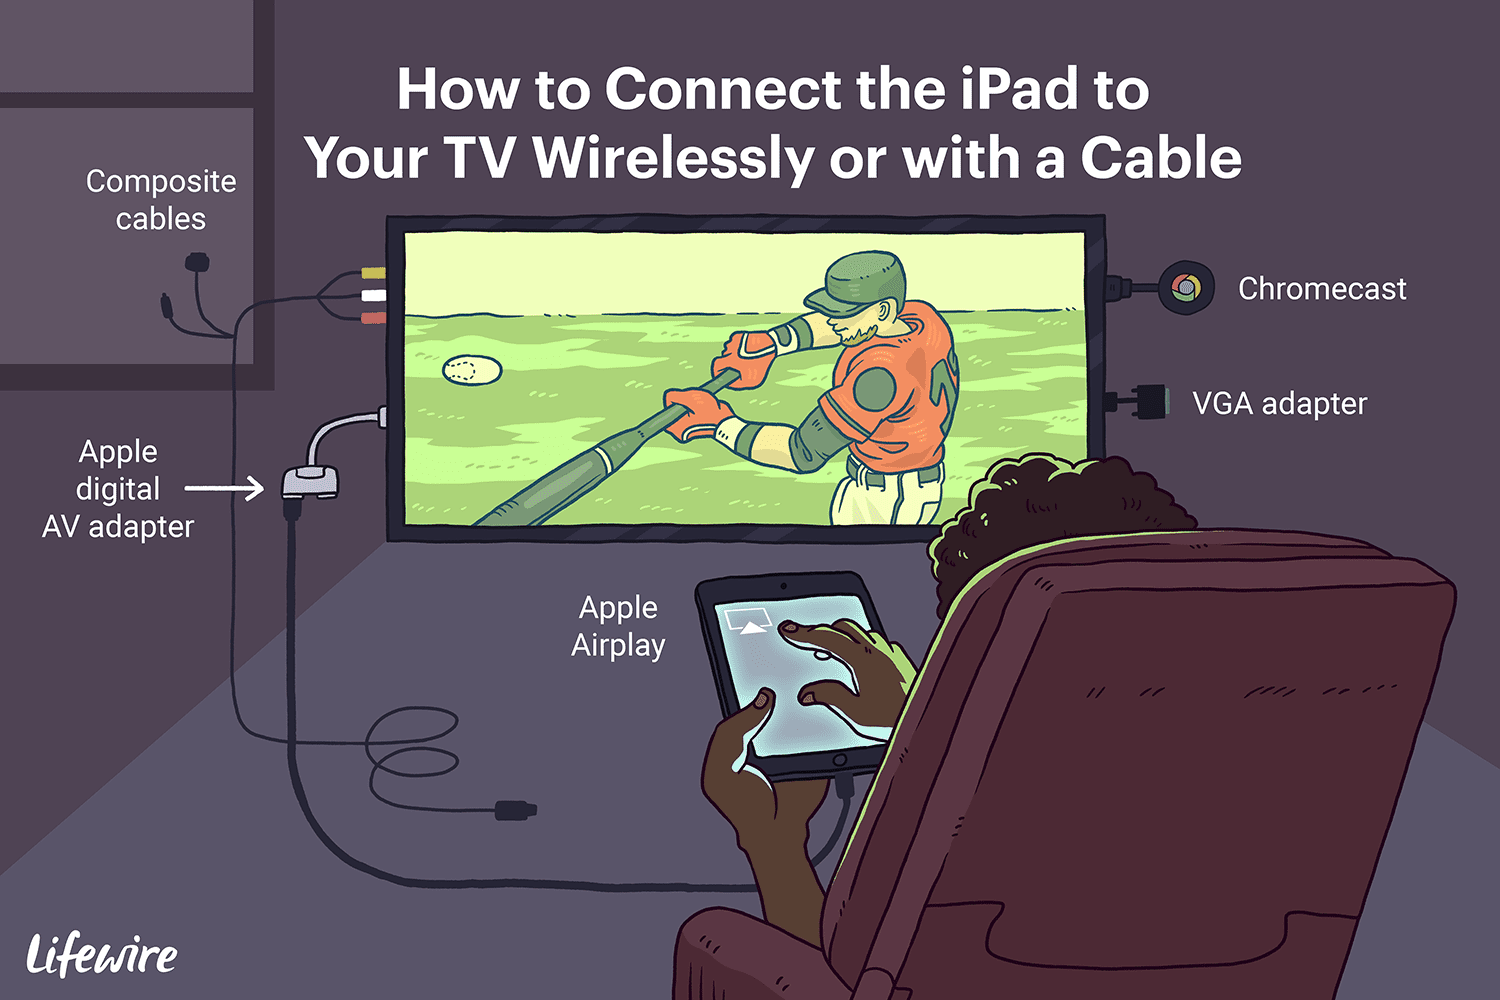 How Can I Connect iPhone to TV with USB